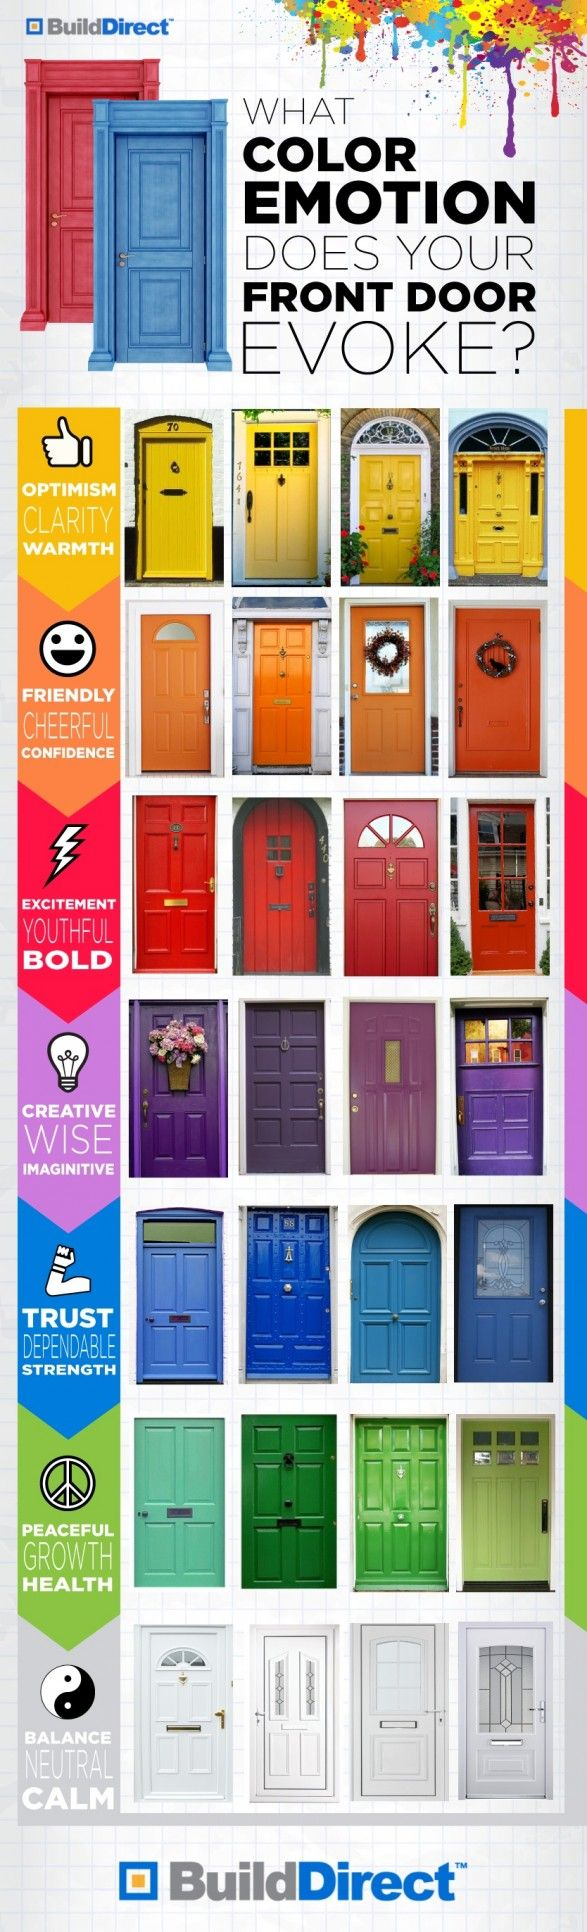 Color and Emotion - Doors are the gateway to your home or business.  There really are an infinite number of colors that can be used on a door.  But, perception of your home or business begins here.  The info graphic is from an update is the US Door  More Blog.  It shows some really colorful ideas for your door.  Which one is your favorite?       #doors #paint